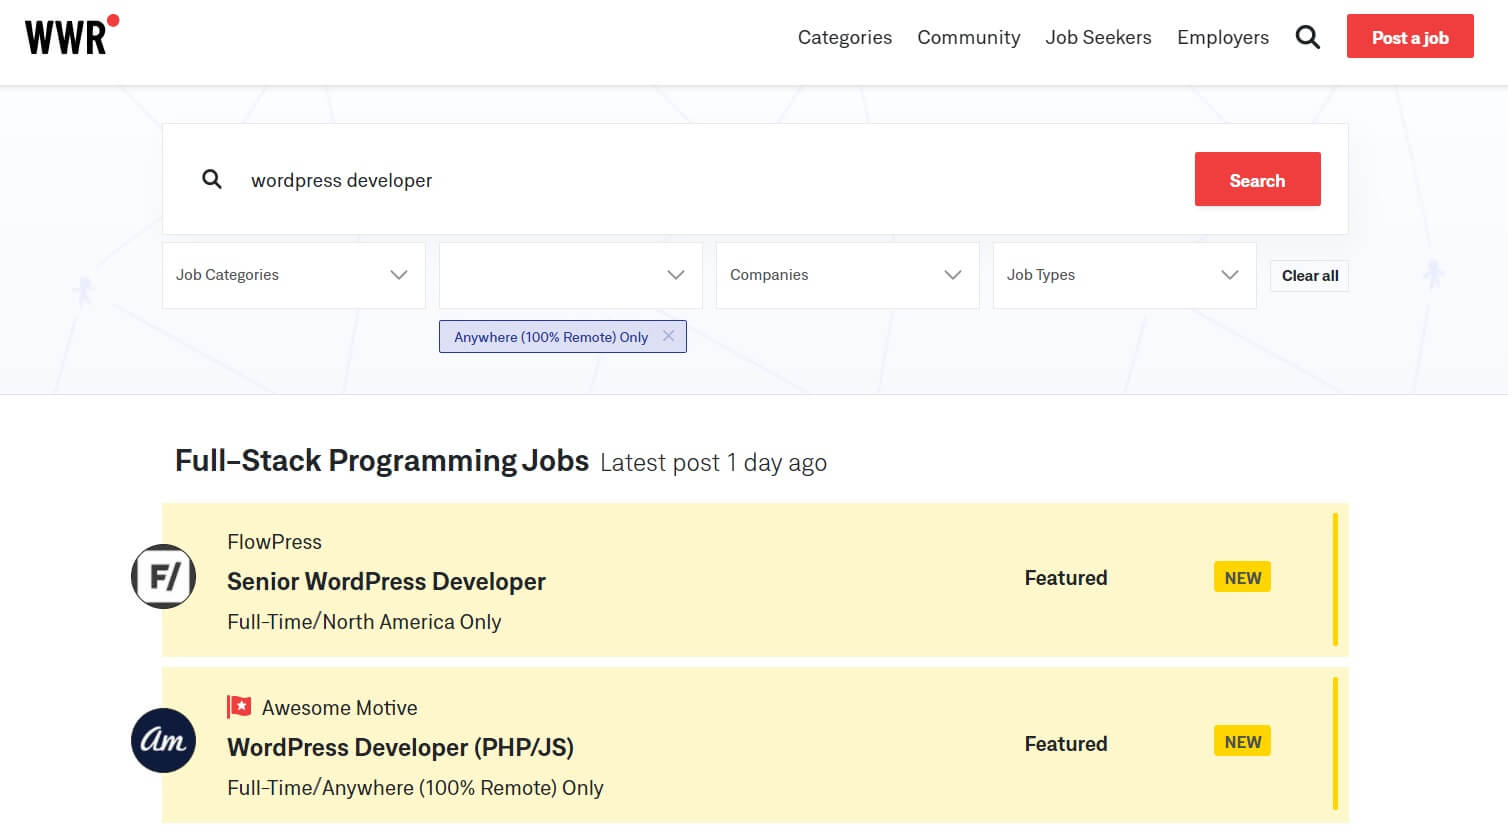 The WeWorkRemotely job search page